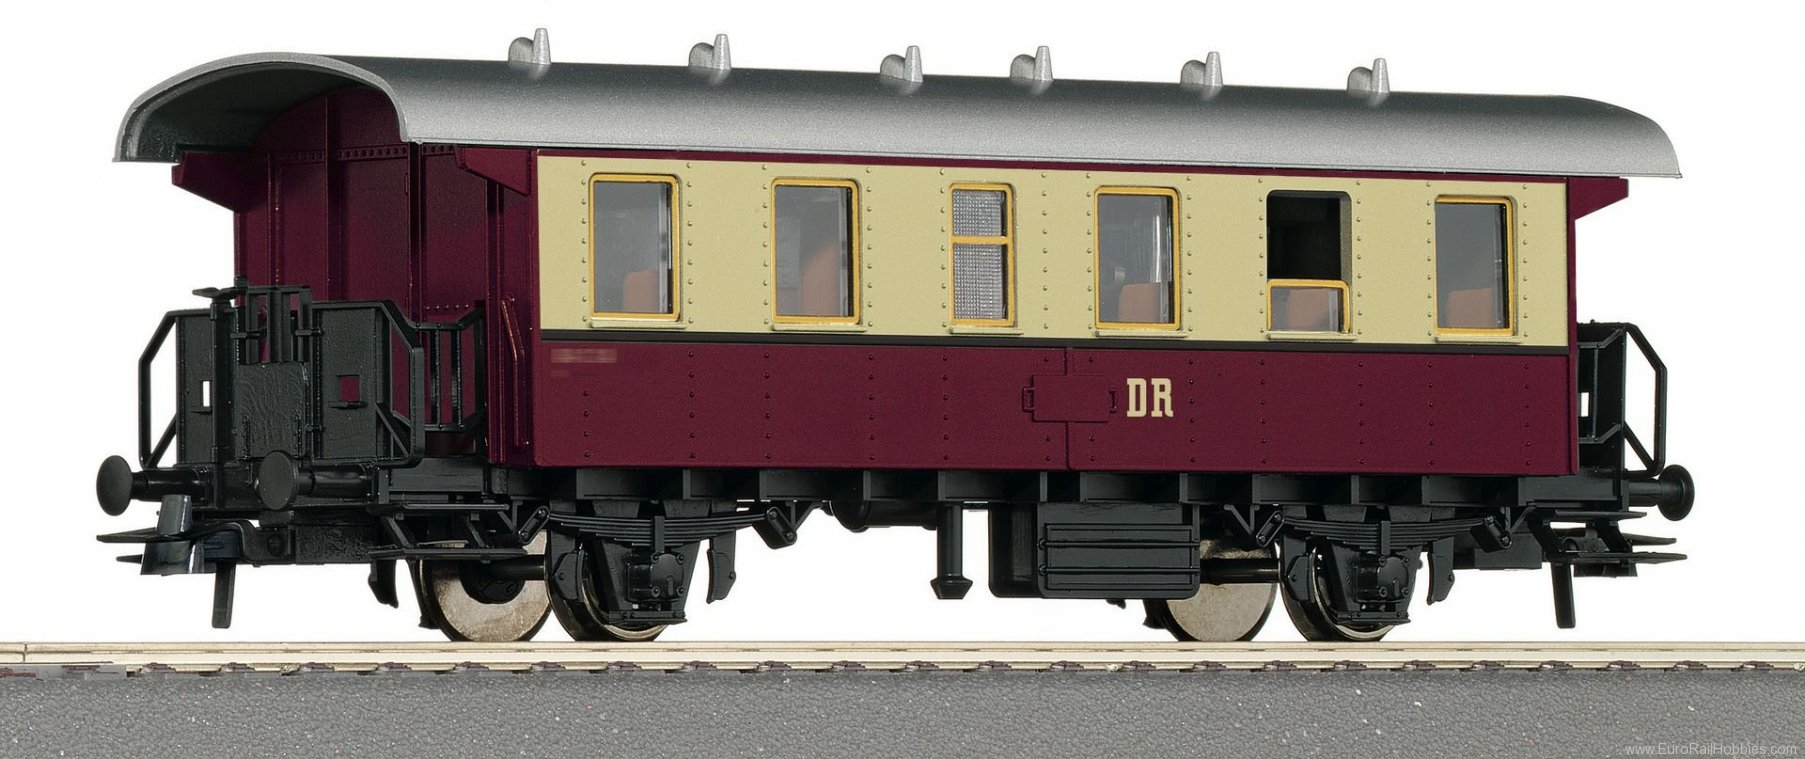 Roco 54334 2nd class passenger carriage, DR